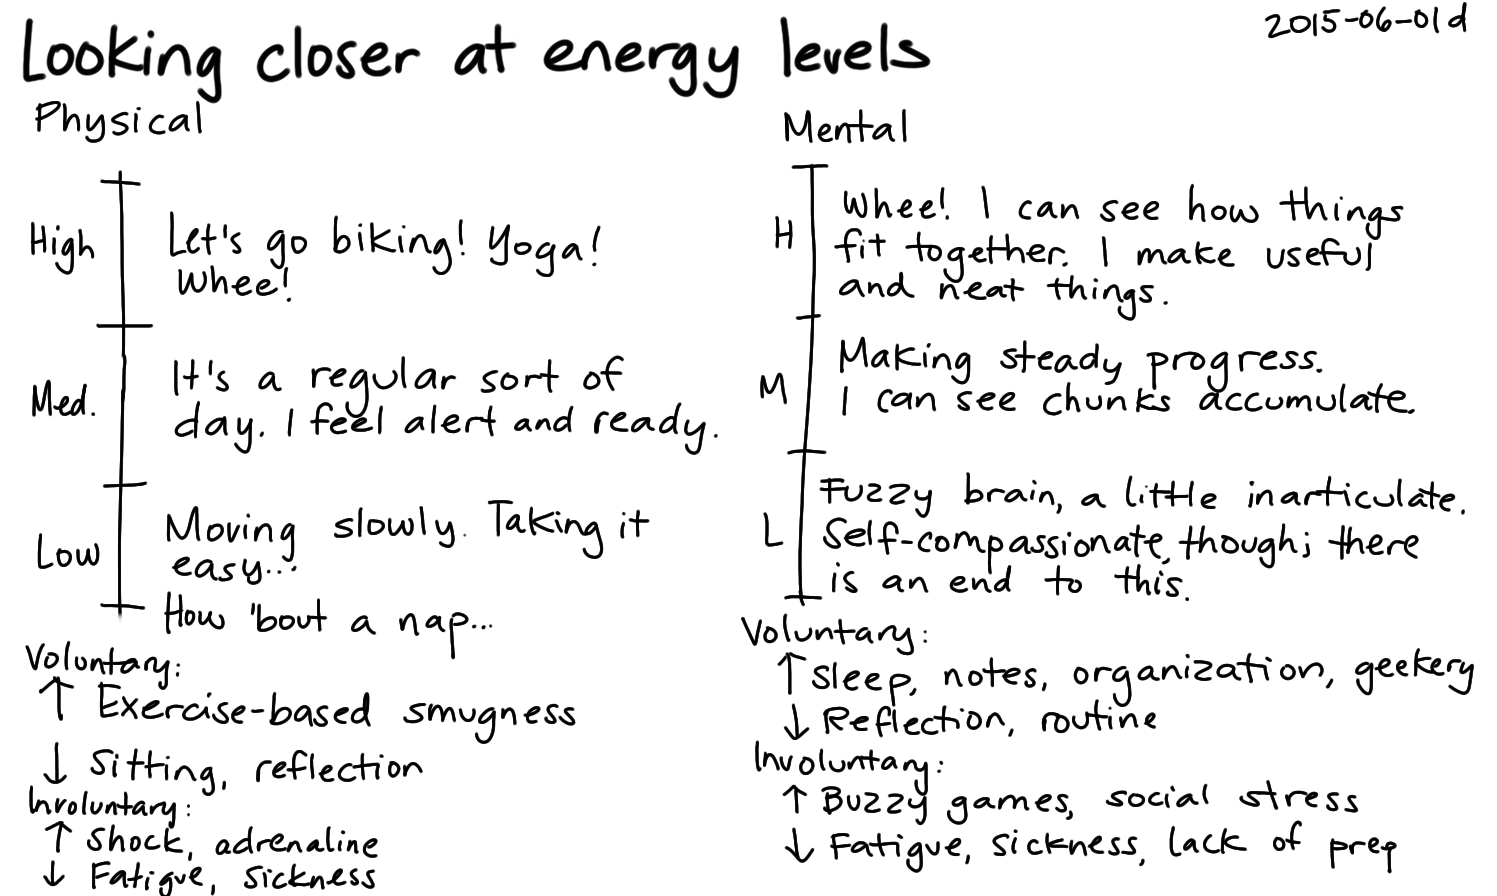 2015-06-01d Looking closer at energy levels -- index card #fuzzy #energy #fatigue.png